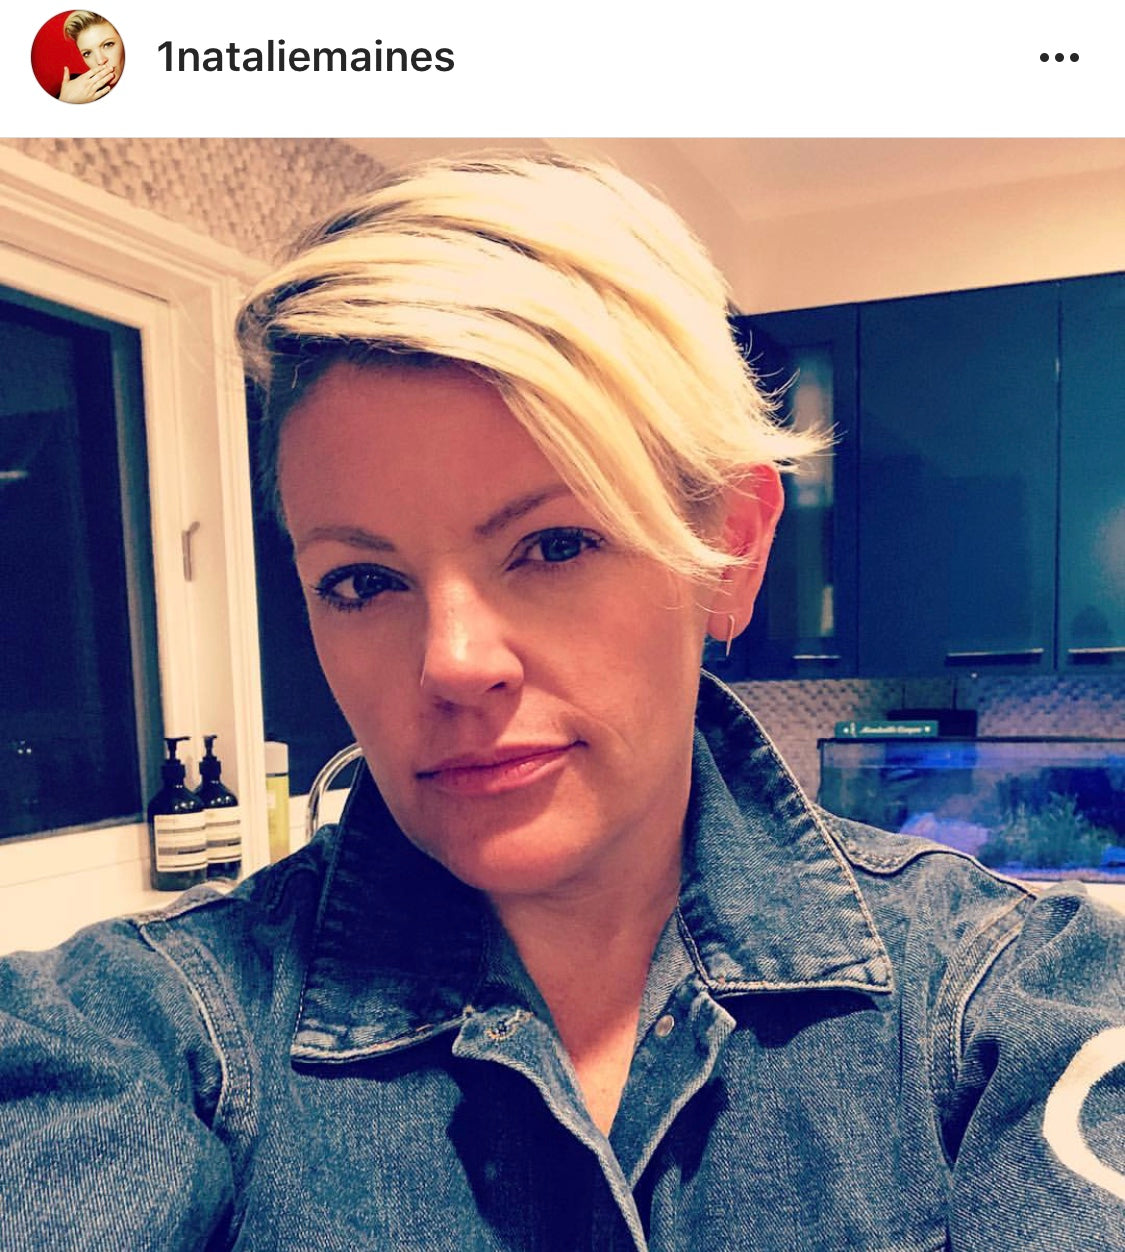 Natalie maines wears wren and glory denim jacket